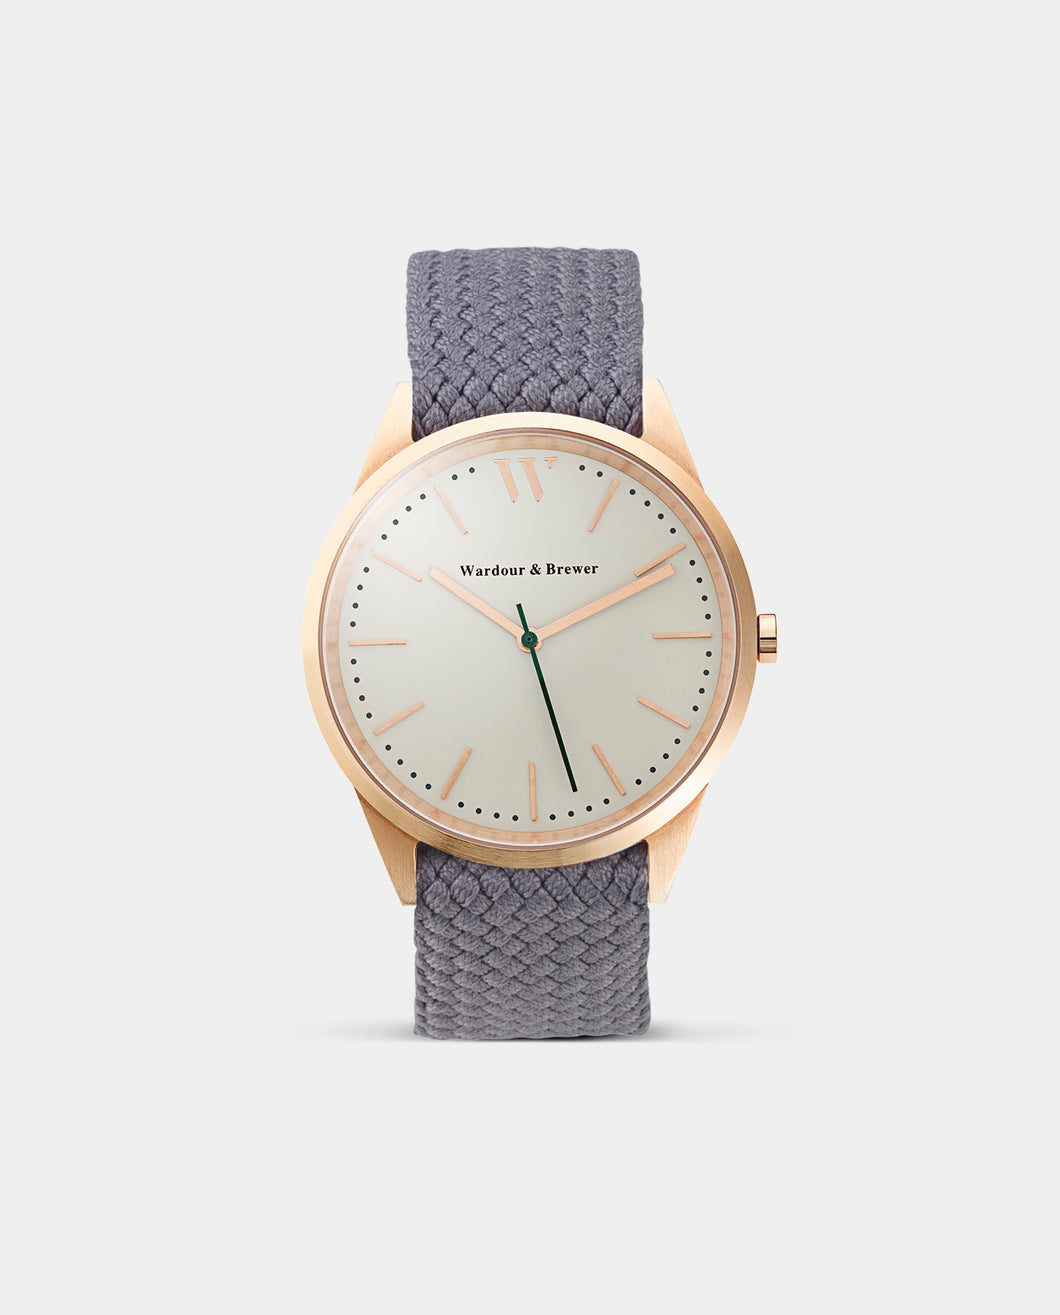 The Original 40mm Rose Gold – Cloudy Grey Perlon Strap